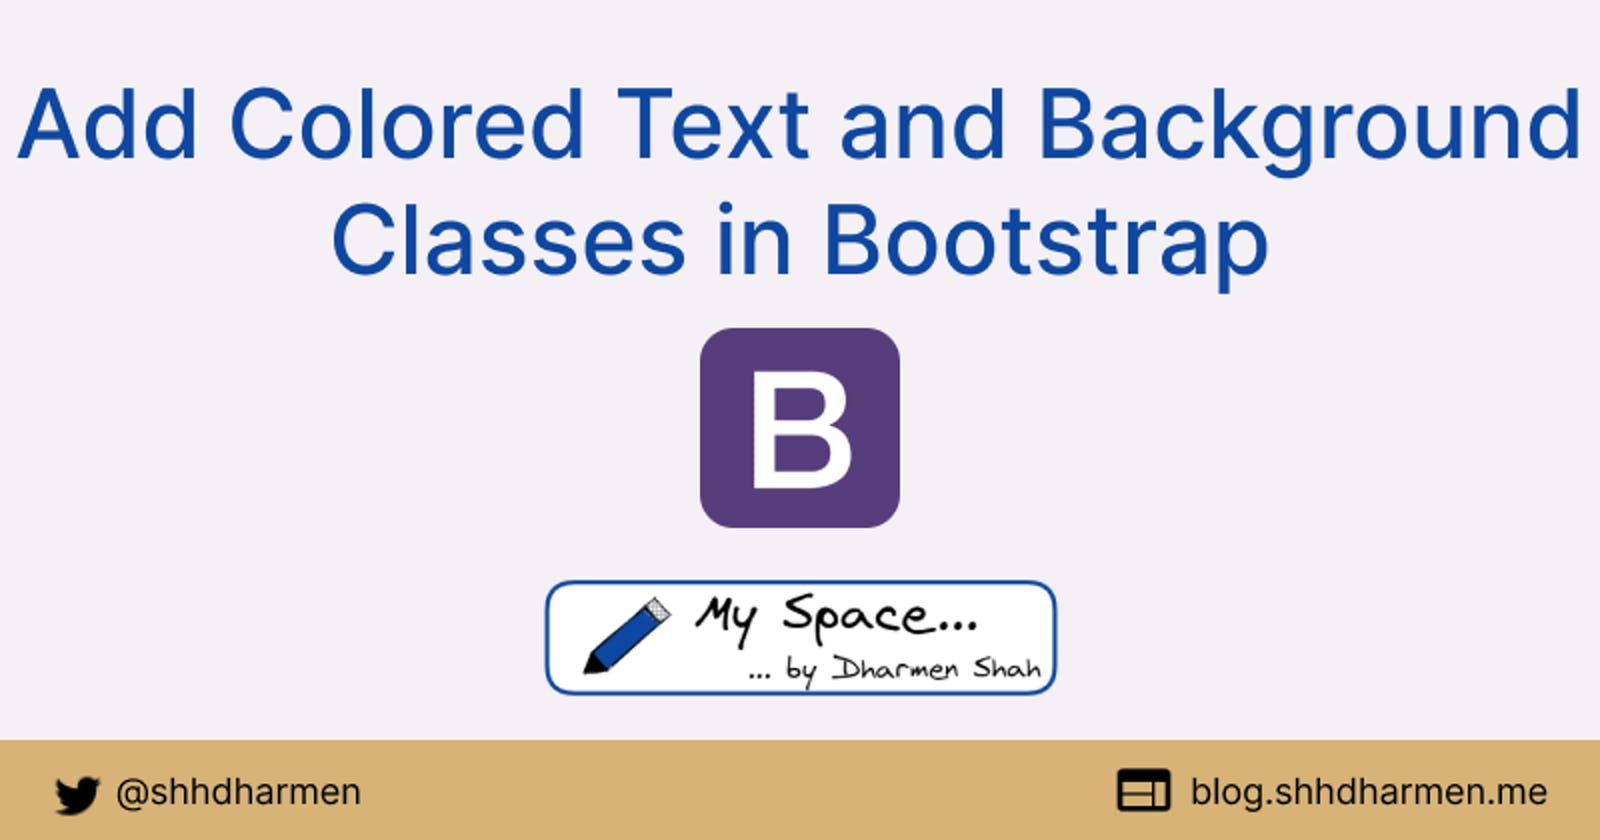 Add Colored Text and Background Classes in Bootstrap